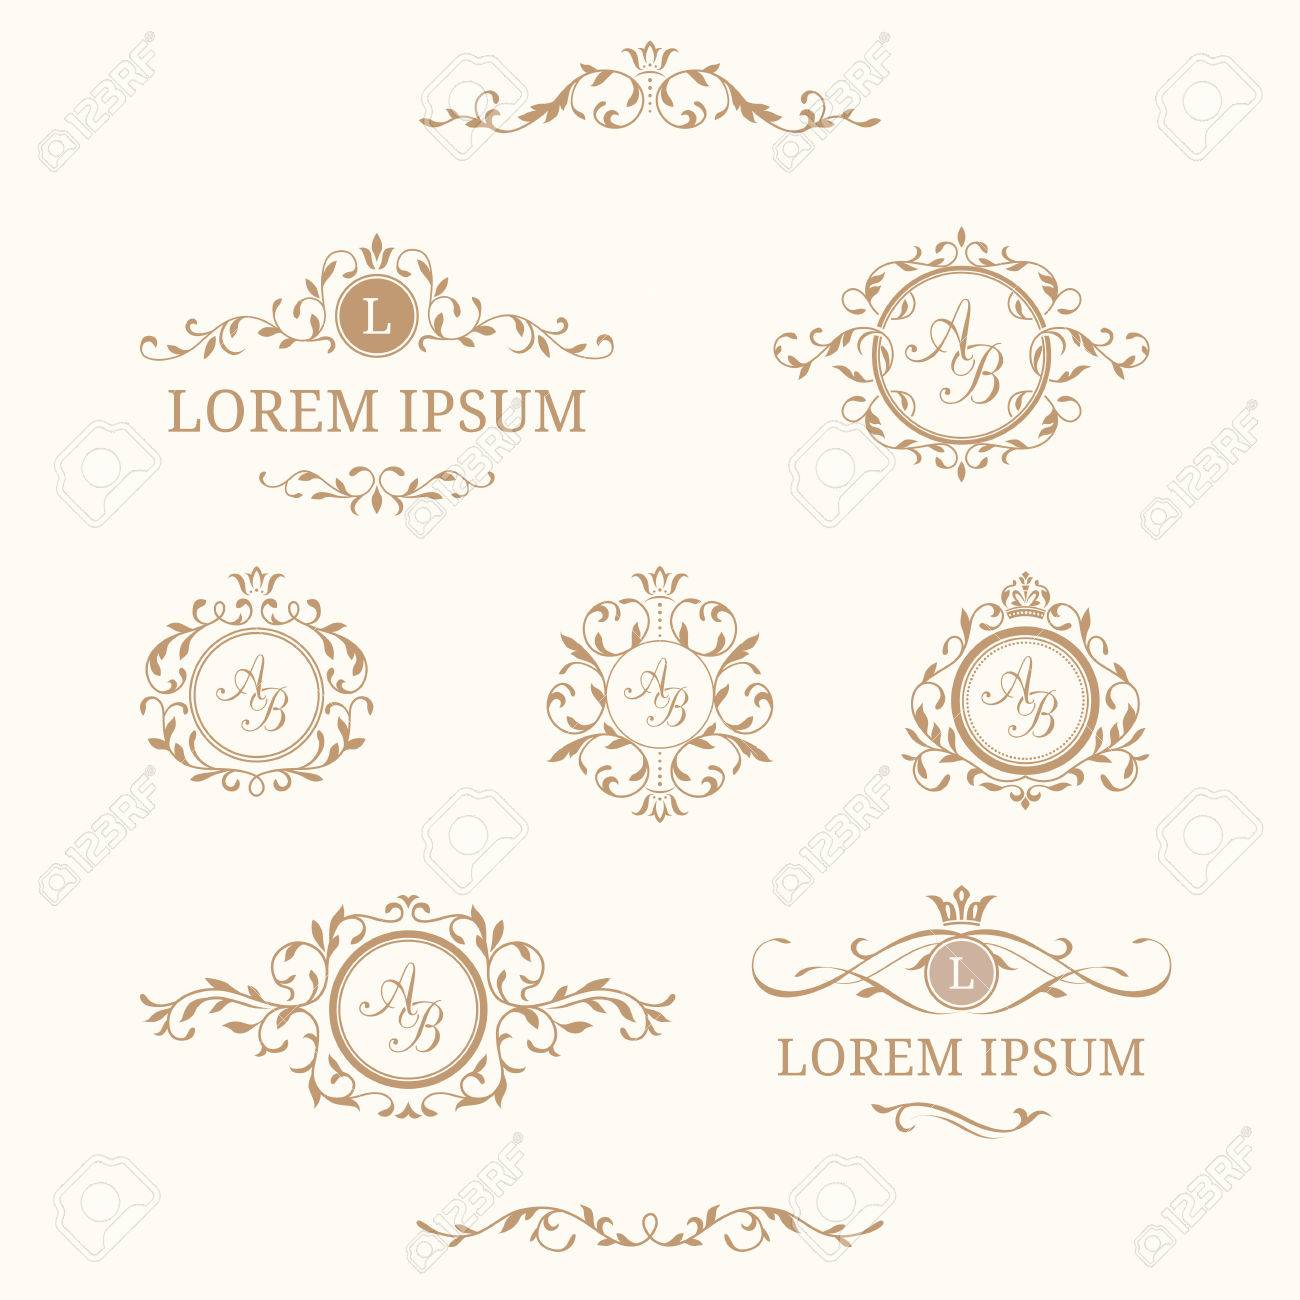 Elegant Floral Monograms And Borders Design Templates For Invitations